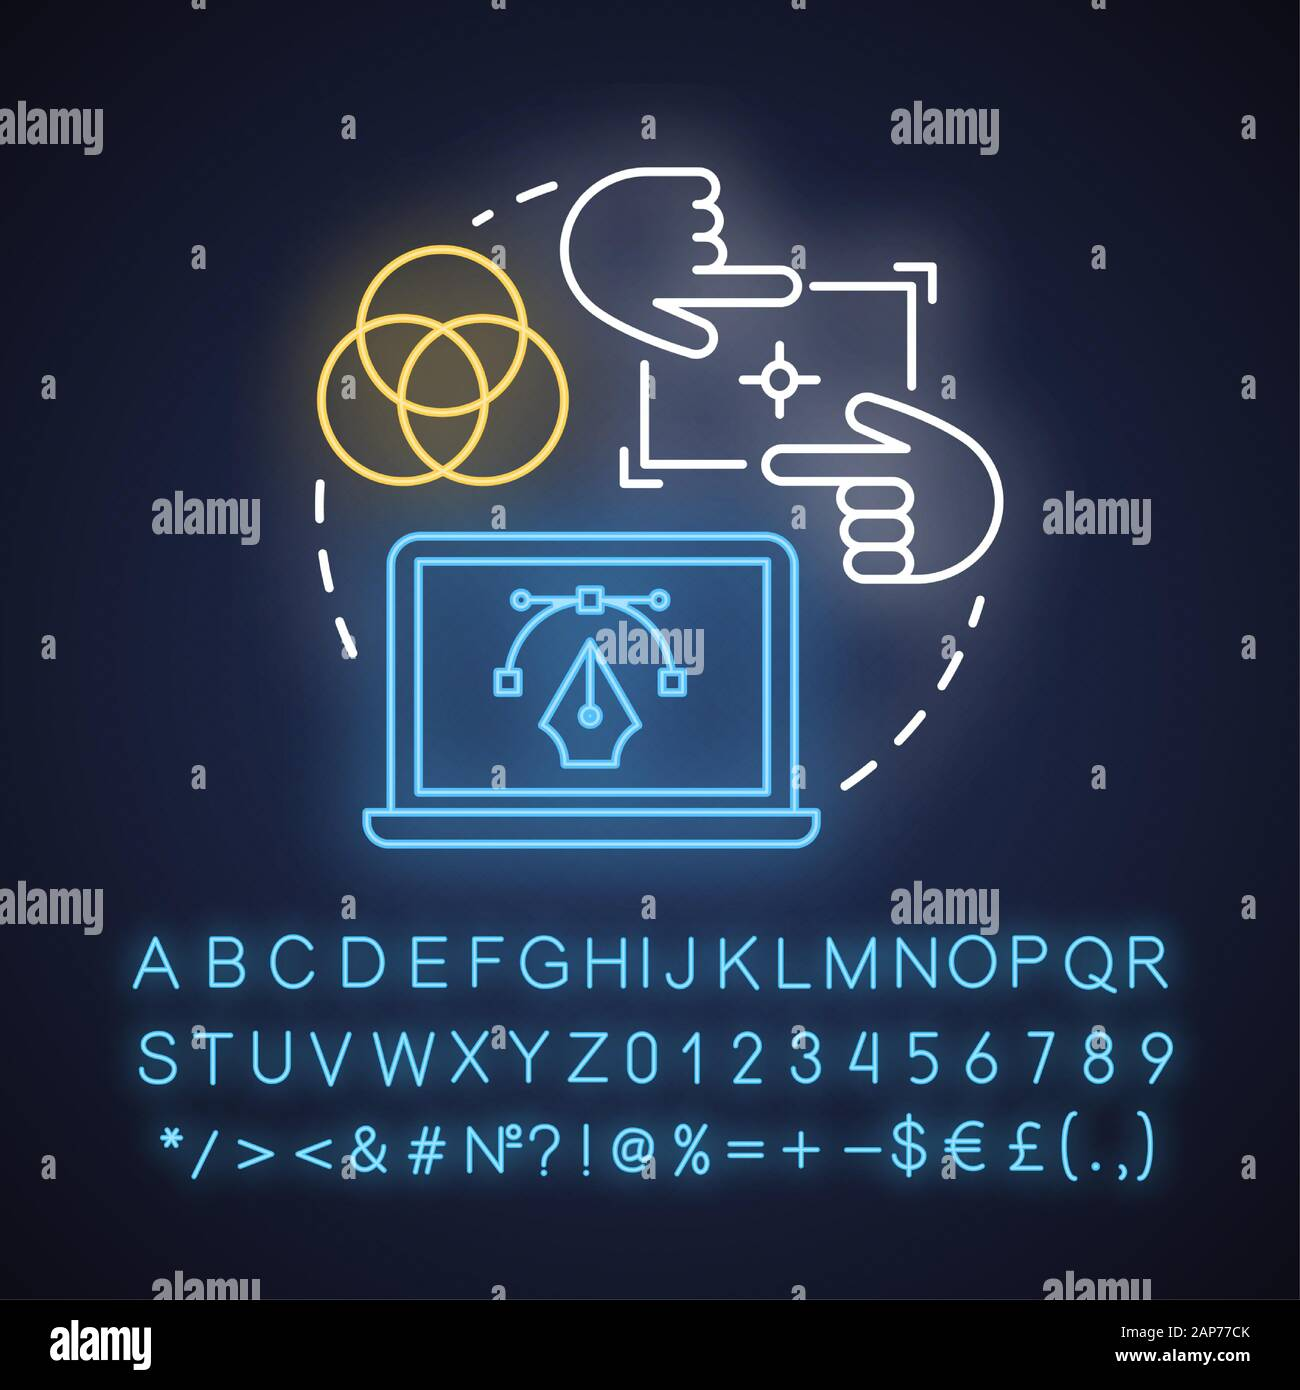 Ui Design Tools Neon Light Concept Icon Software Interface Development Idea Designing Mobile App Visuals Glowing Sign With Alphabet Numbers And Sy Stock Vector Image Art Alamy